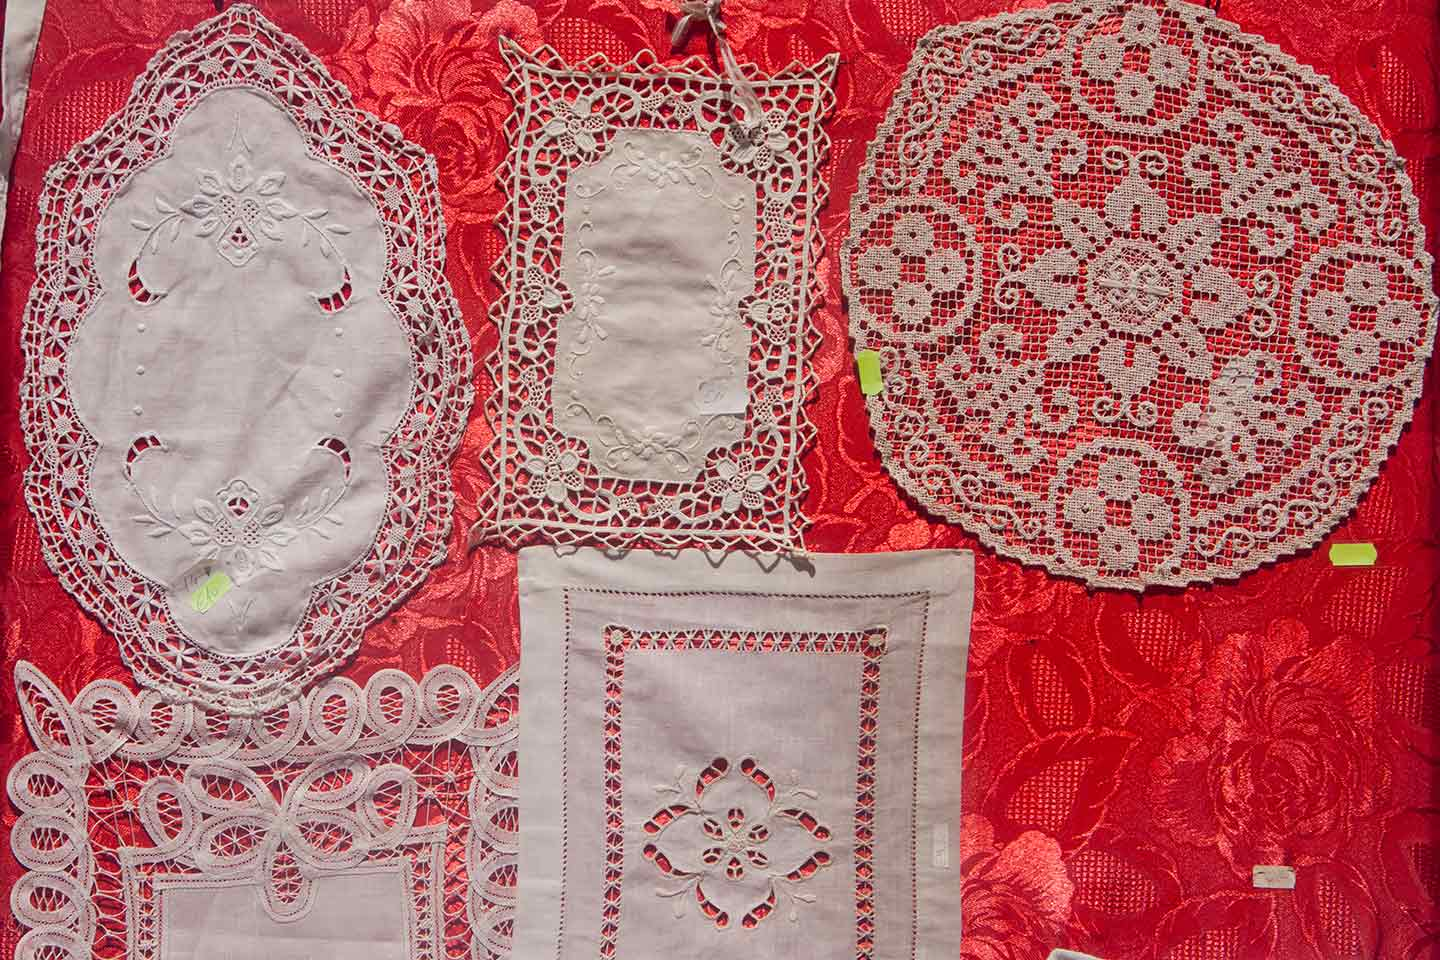 Image of Burano Lace for sale at a shop on the island